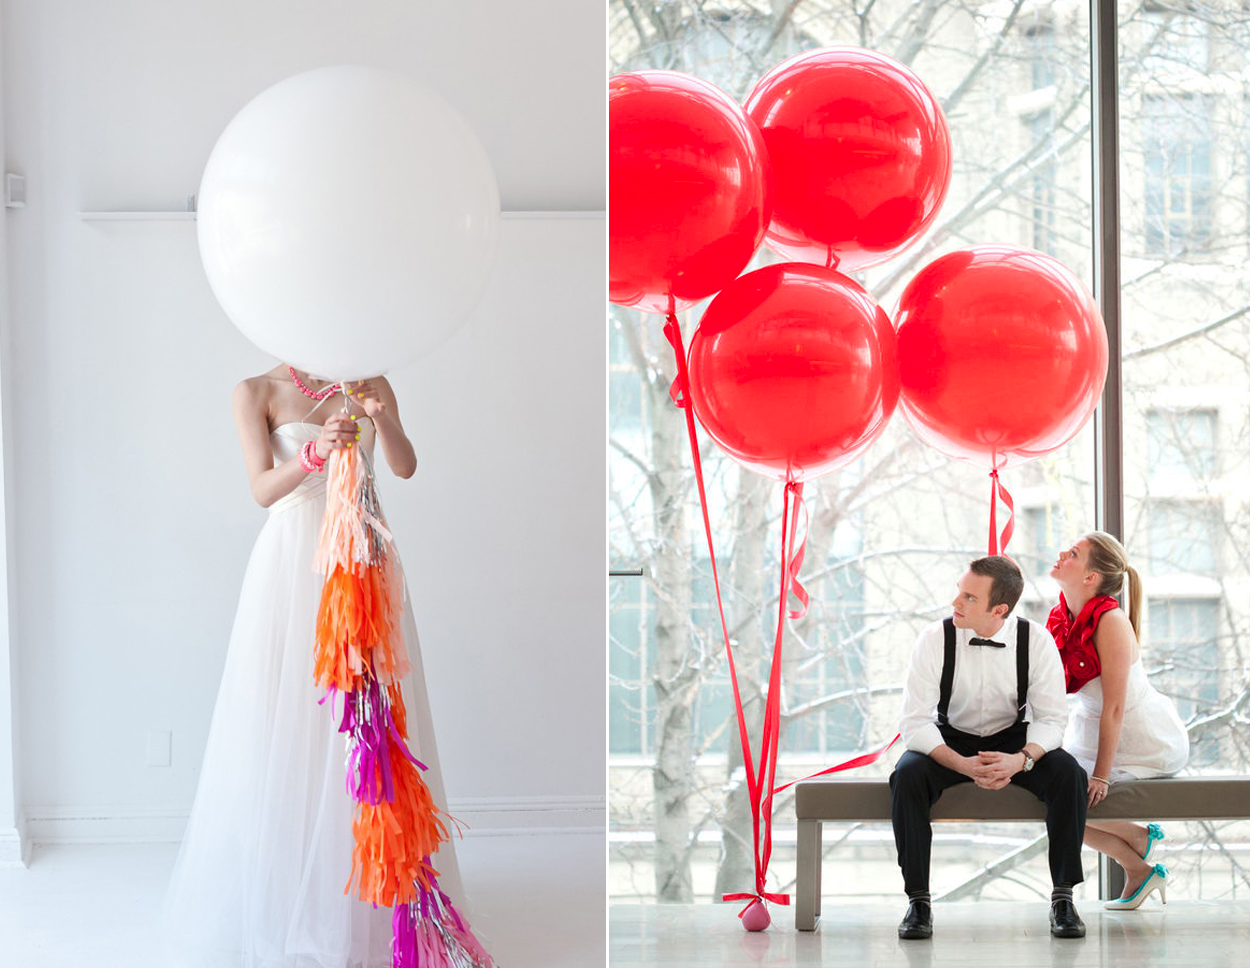 Balloon wedding inspiration diy wedding reception ideas for Ballon wedding decoration